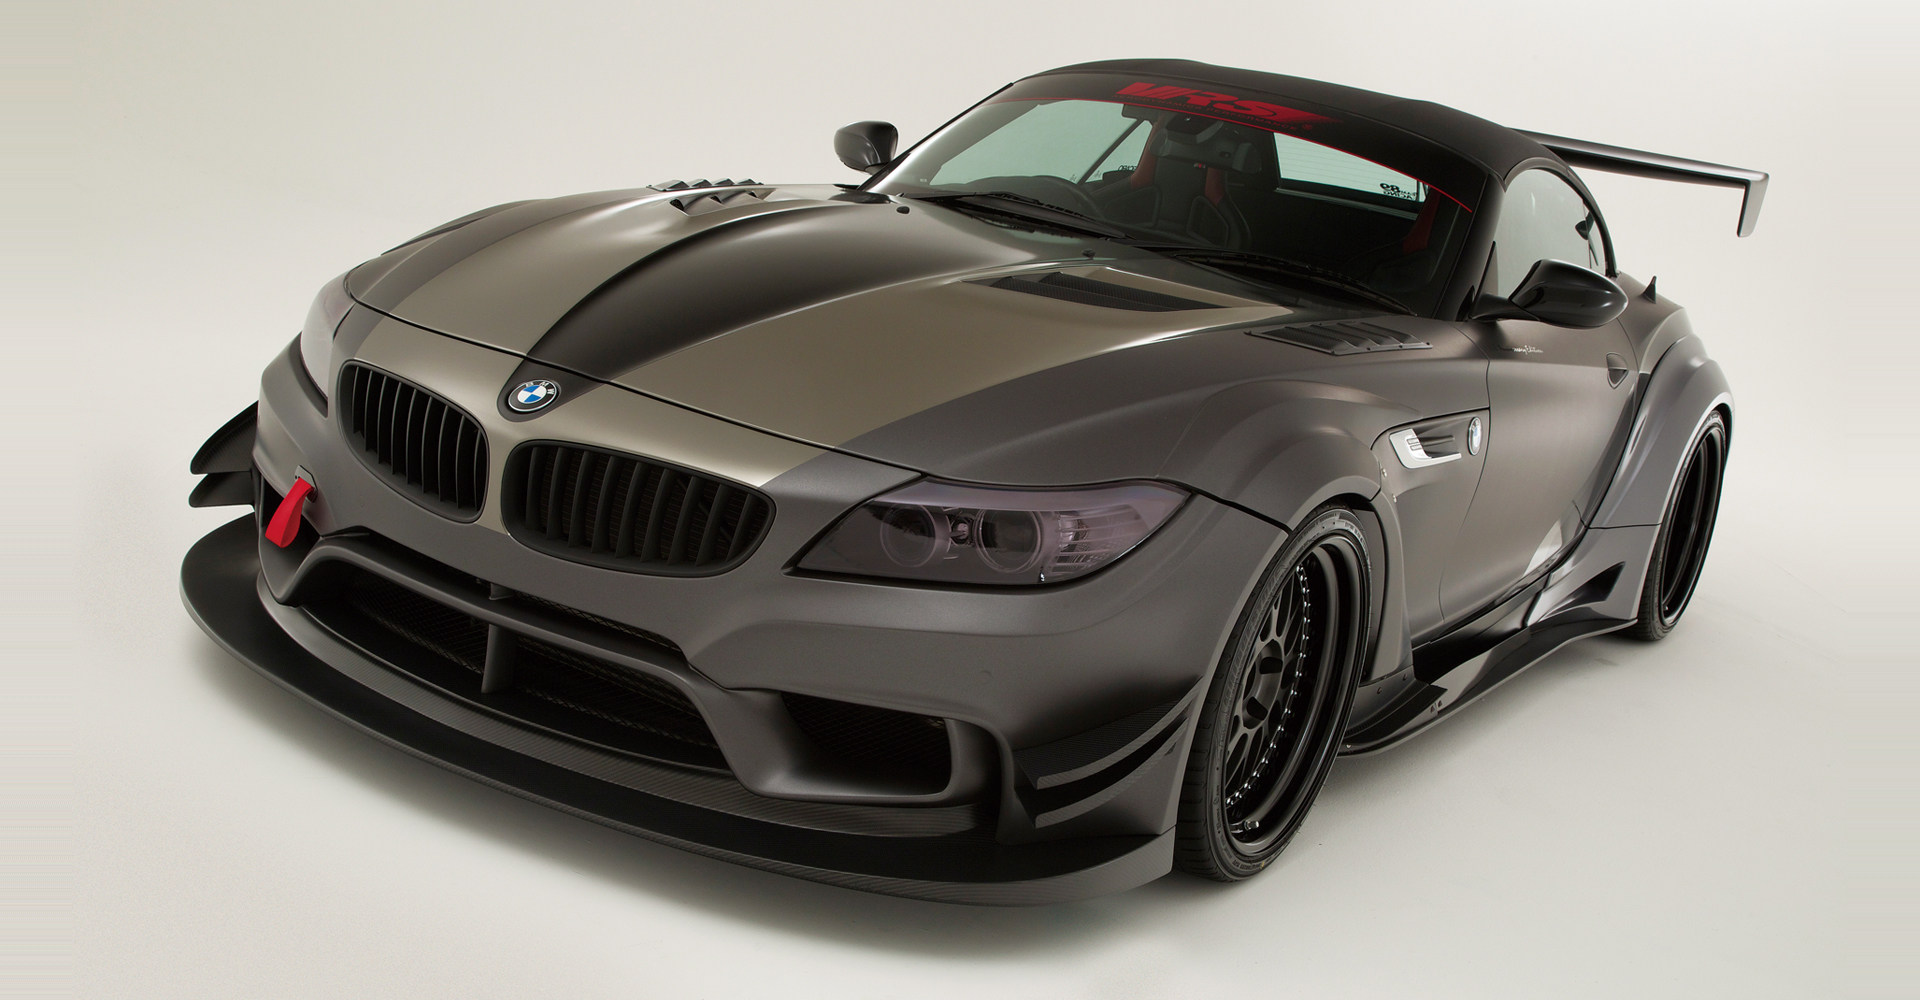 vrs bmw e89 z4 gt anniversary edition. Black Bedroom Furniture Sets. Home Design Ideas